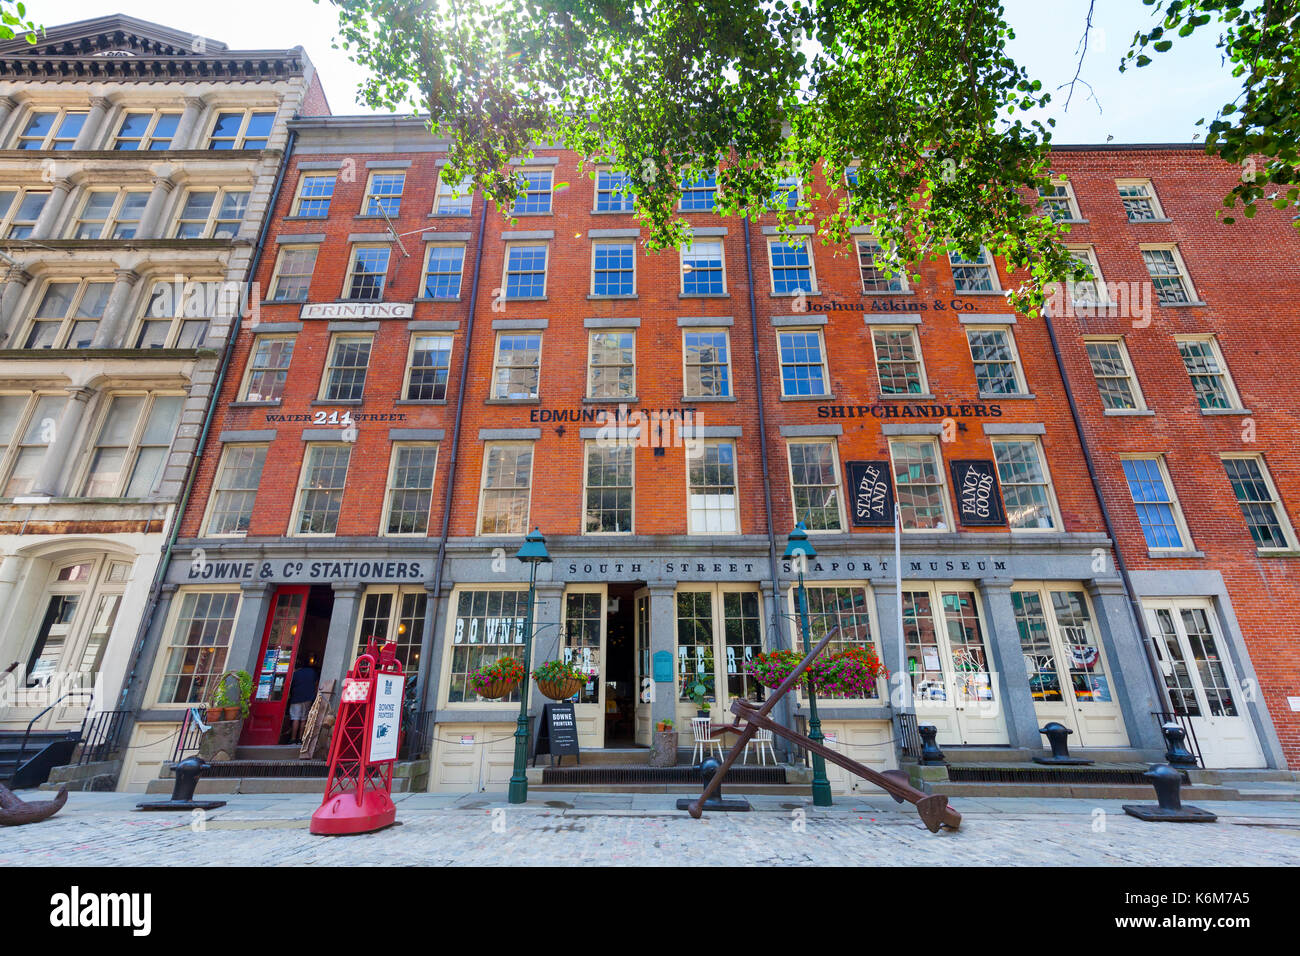 A view of businesses in the South Street Seaport in Lower Manhattan, New York. - Stock Image